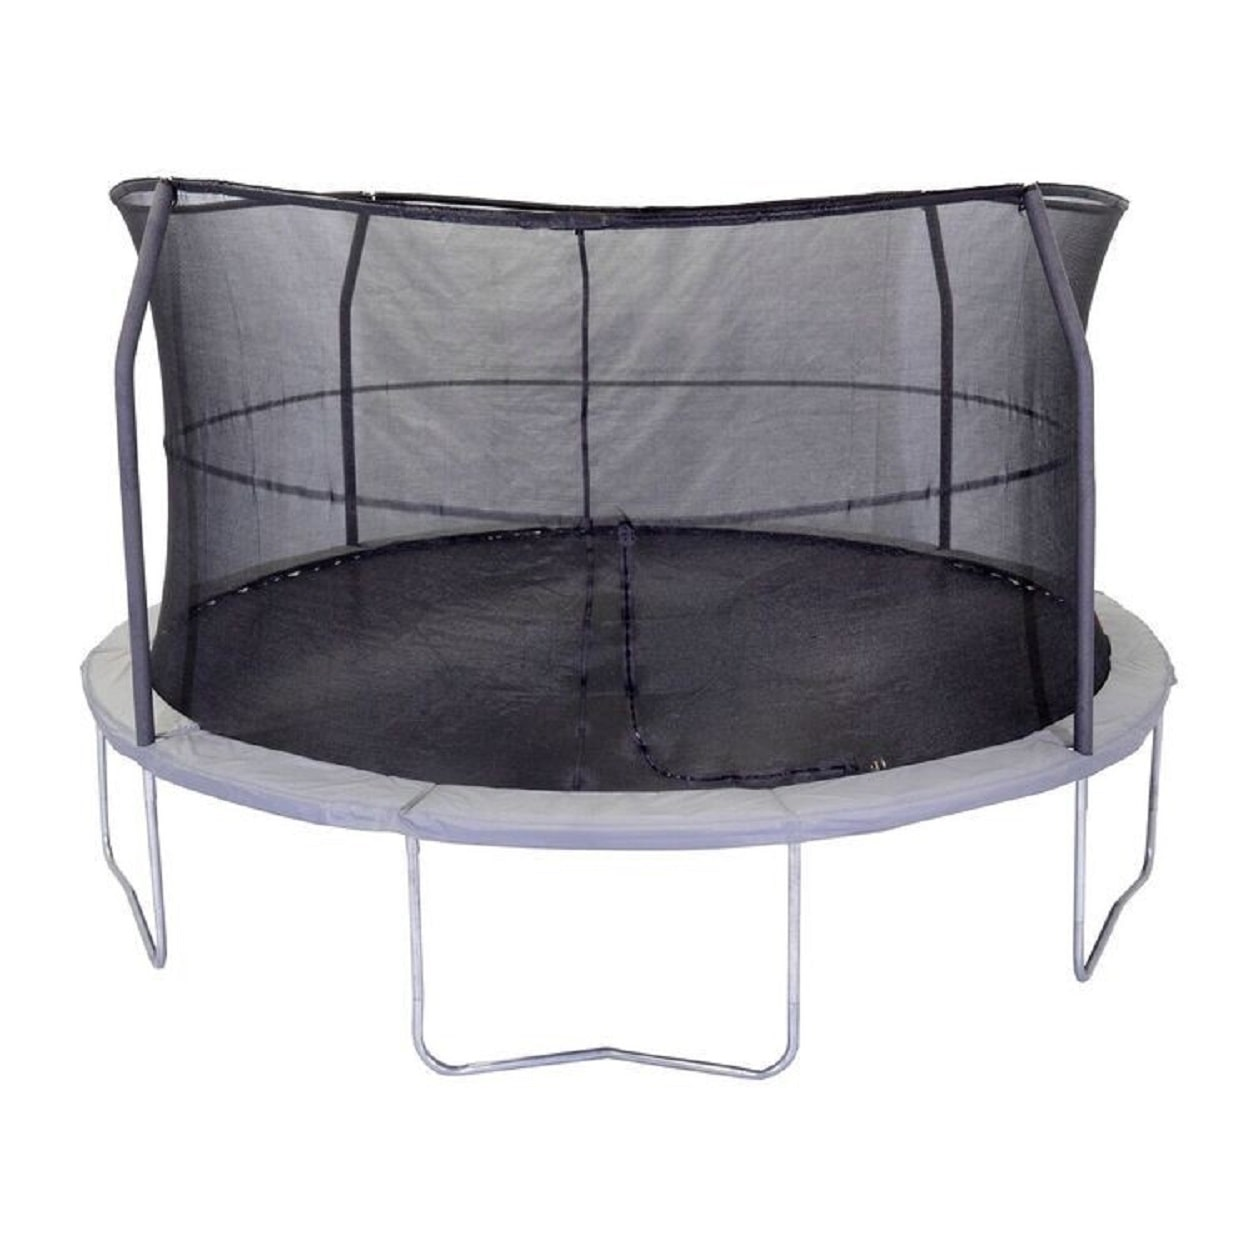 Jumpking  15-foot Trampoline and Enclosure System (6 Legs...